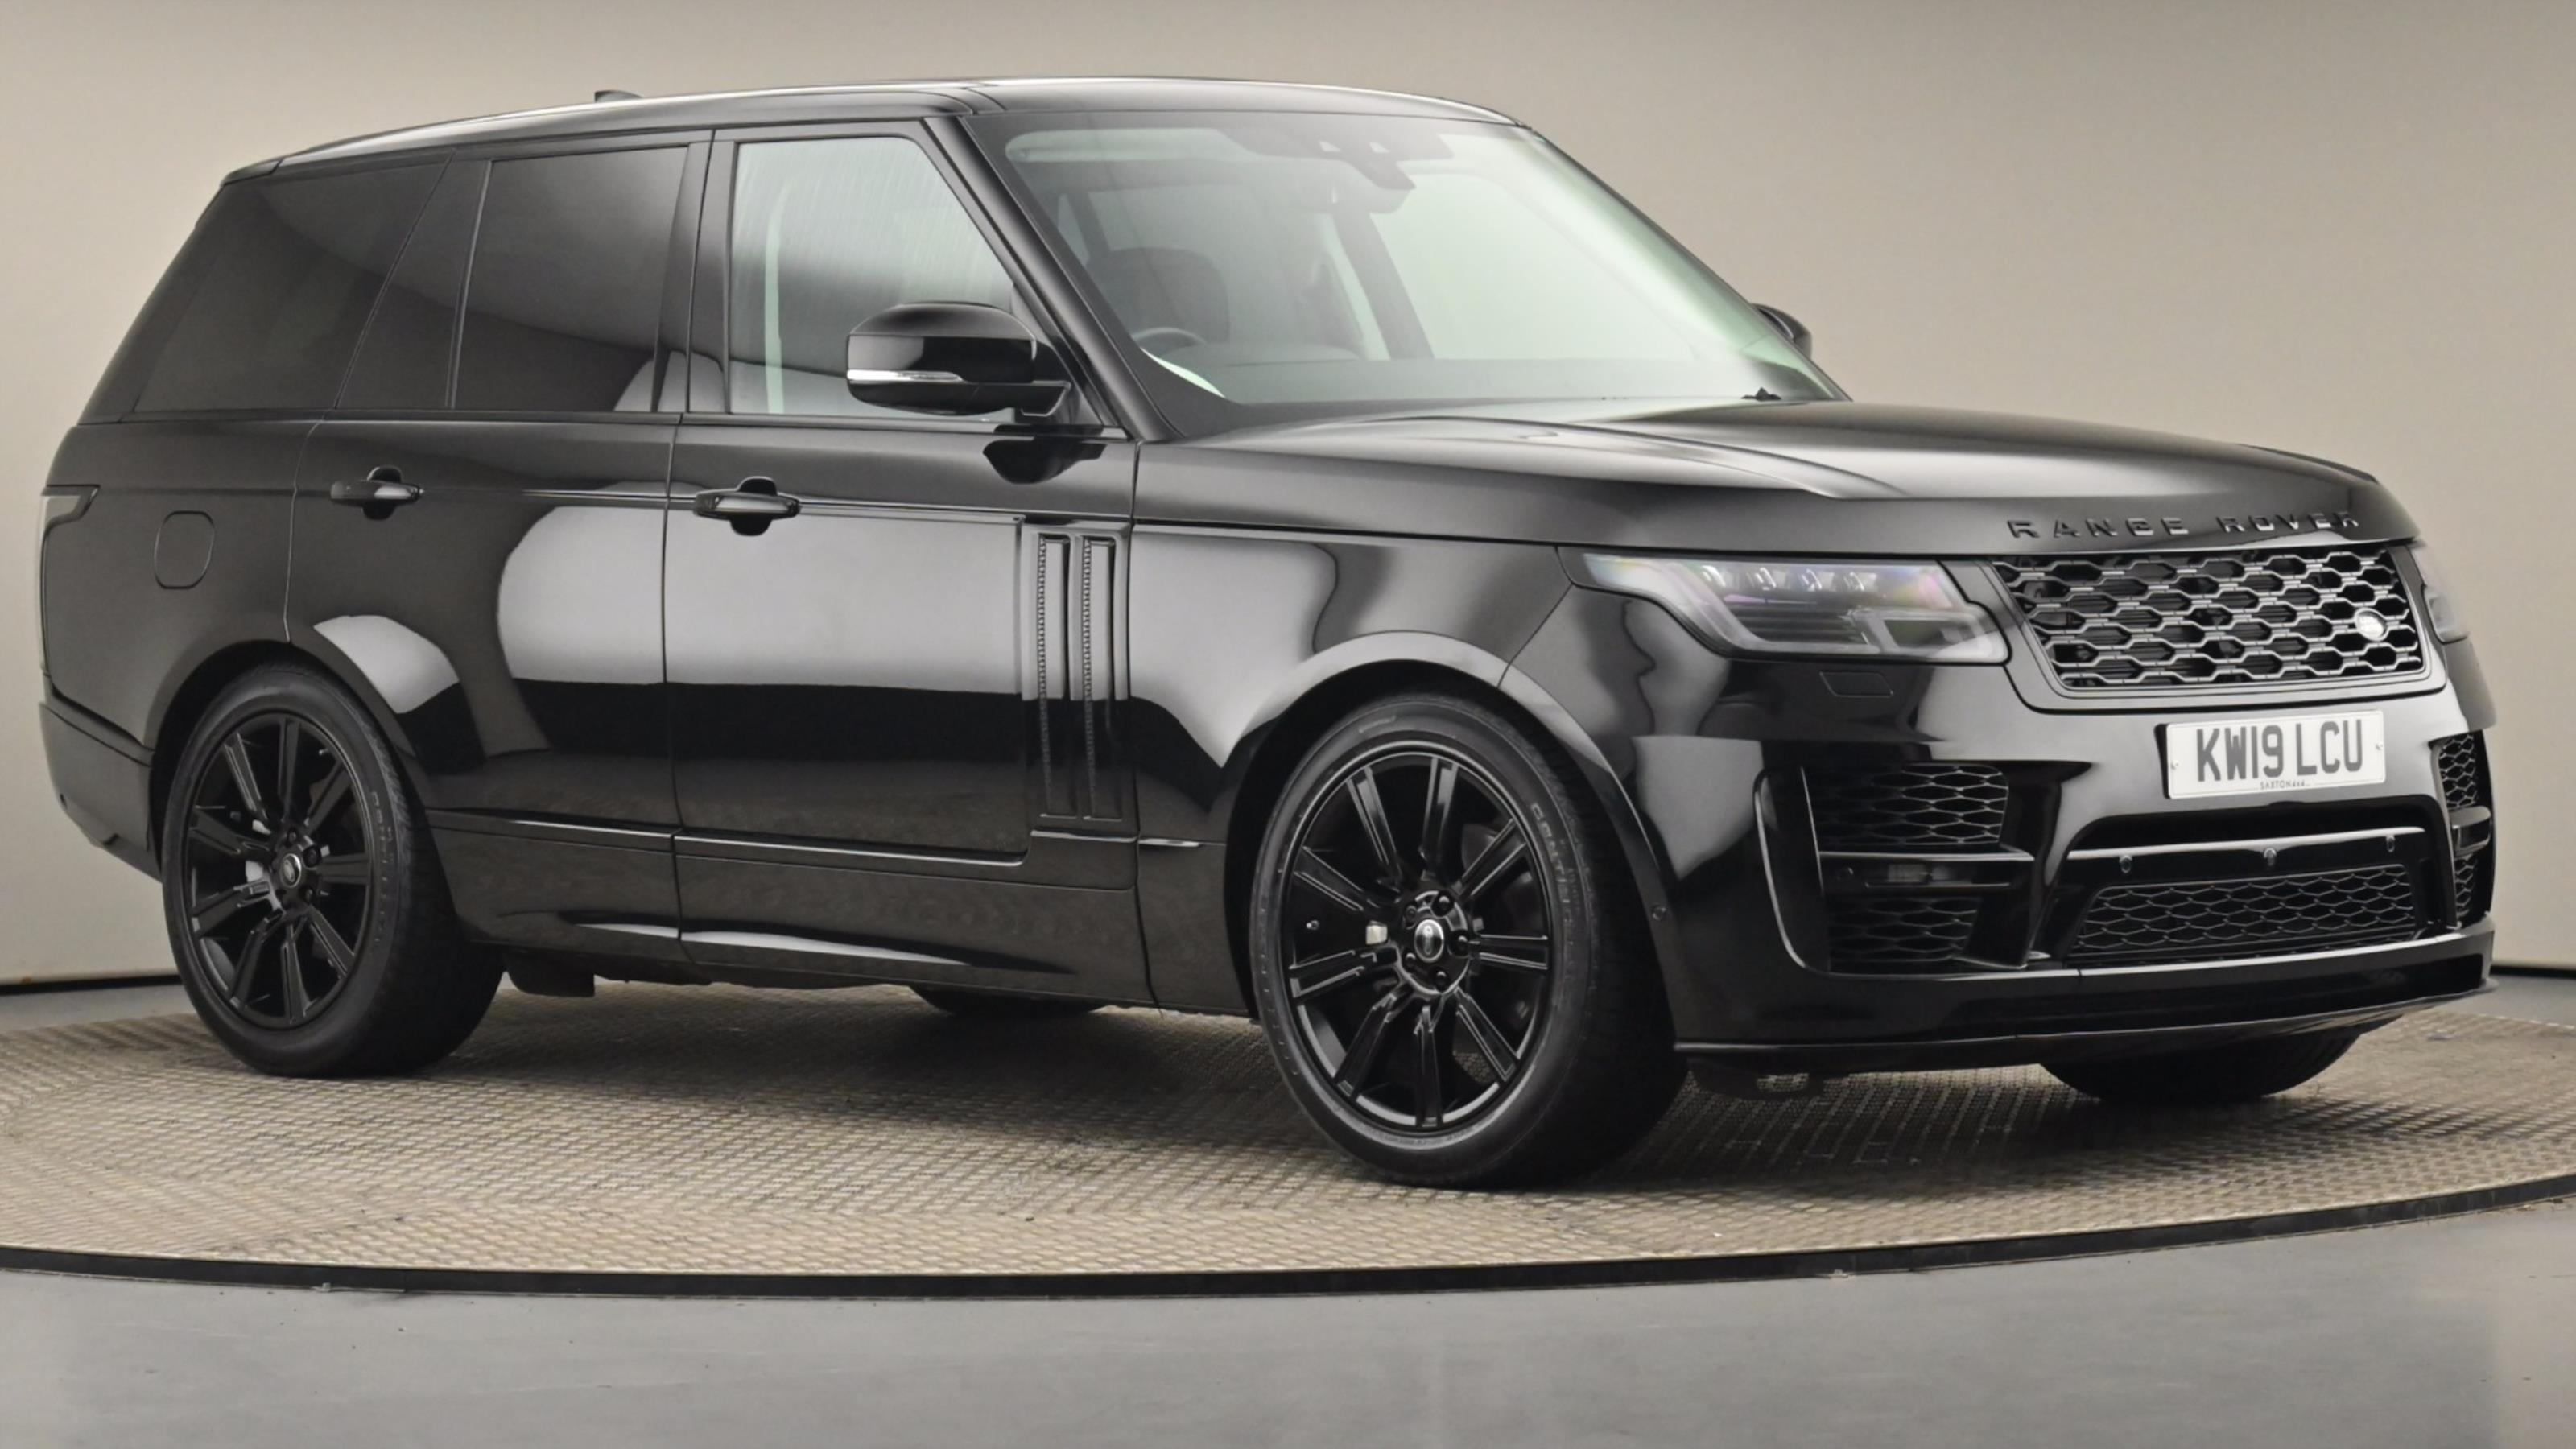 Used 2019 Land Rover RANGE ROVER 3.0 SDV6 Autobiography 4dr Auto at Saxton4x4